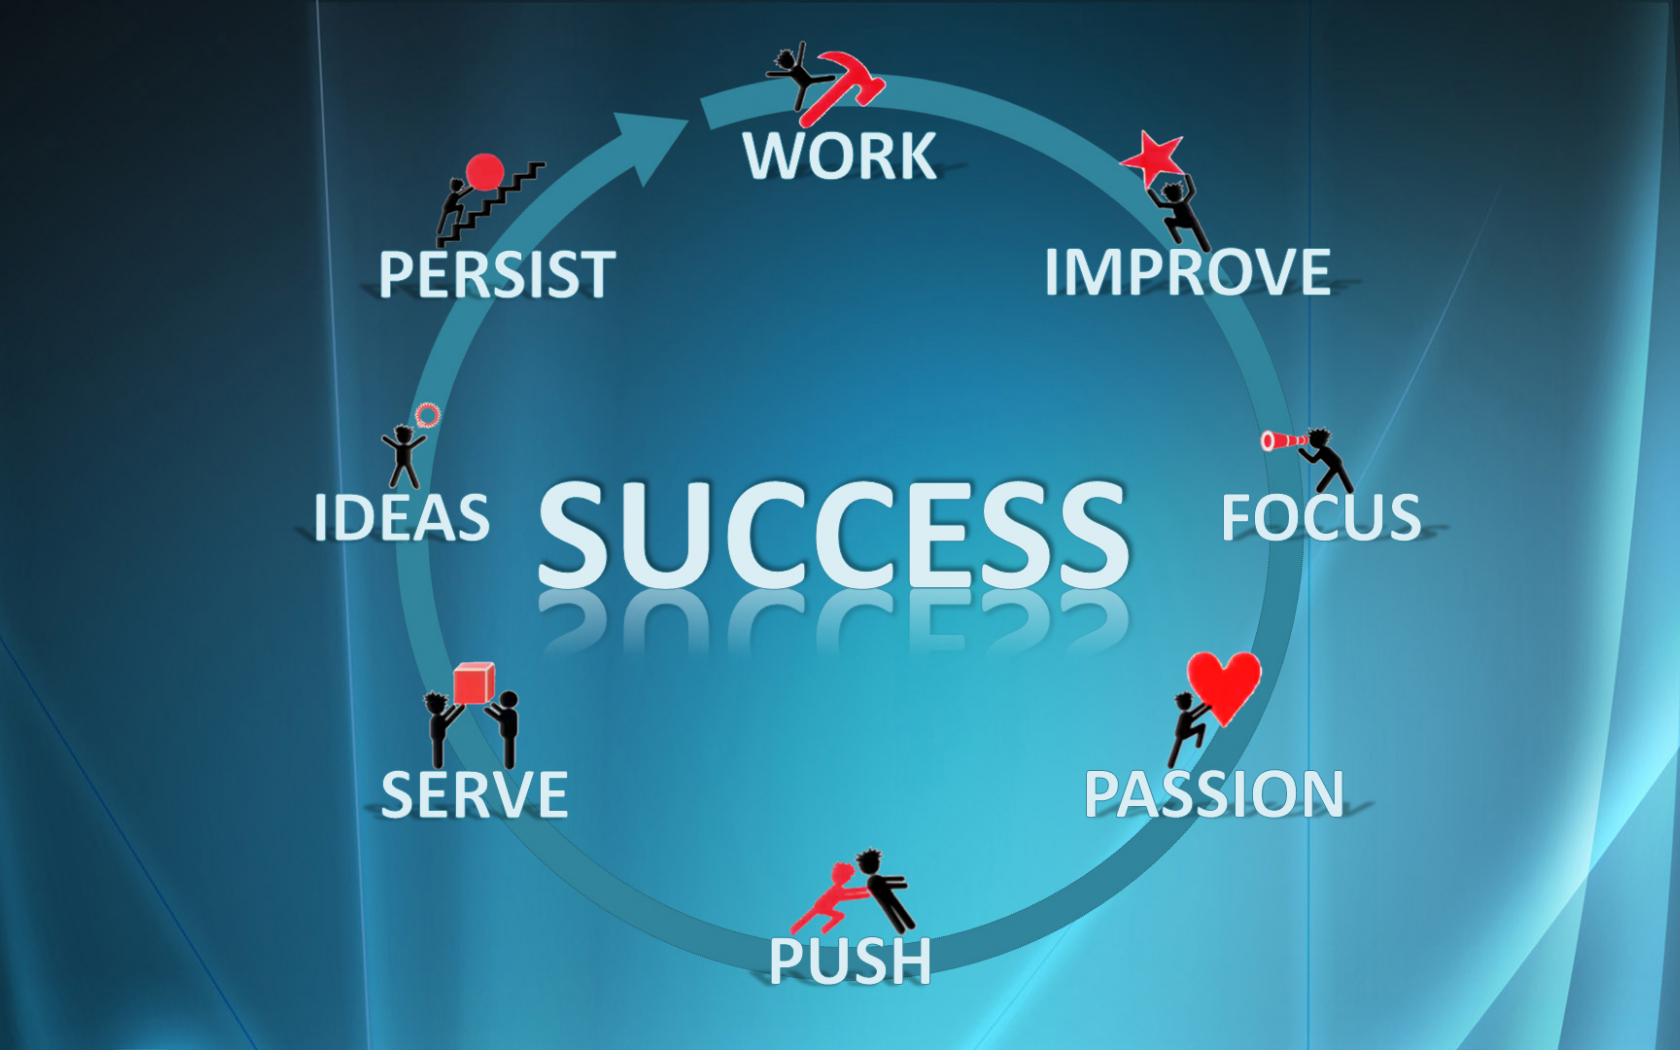 Free Download Hd Wallpapers For Secrets Of Success In 8 Words Behet Mutlu 1920x1080 For Your Desktop Mobile Tablet Explore 73 Success Wallpapers Success Wallpapers With Quotes Motivational Wallpaper Success Wallpaper Iphone